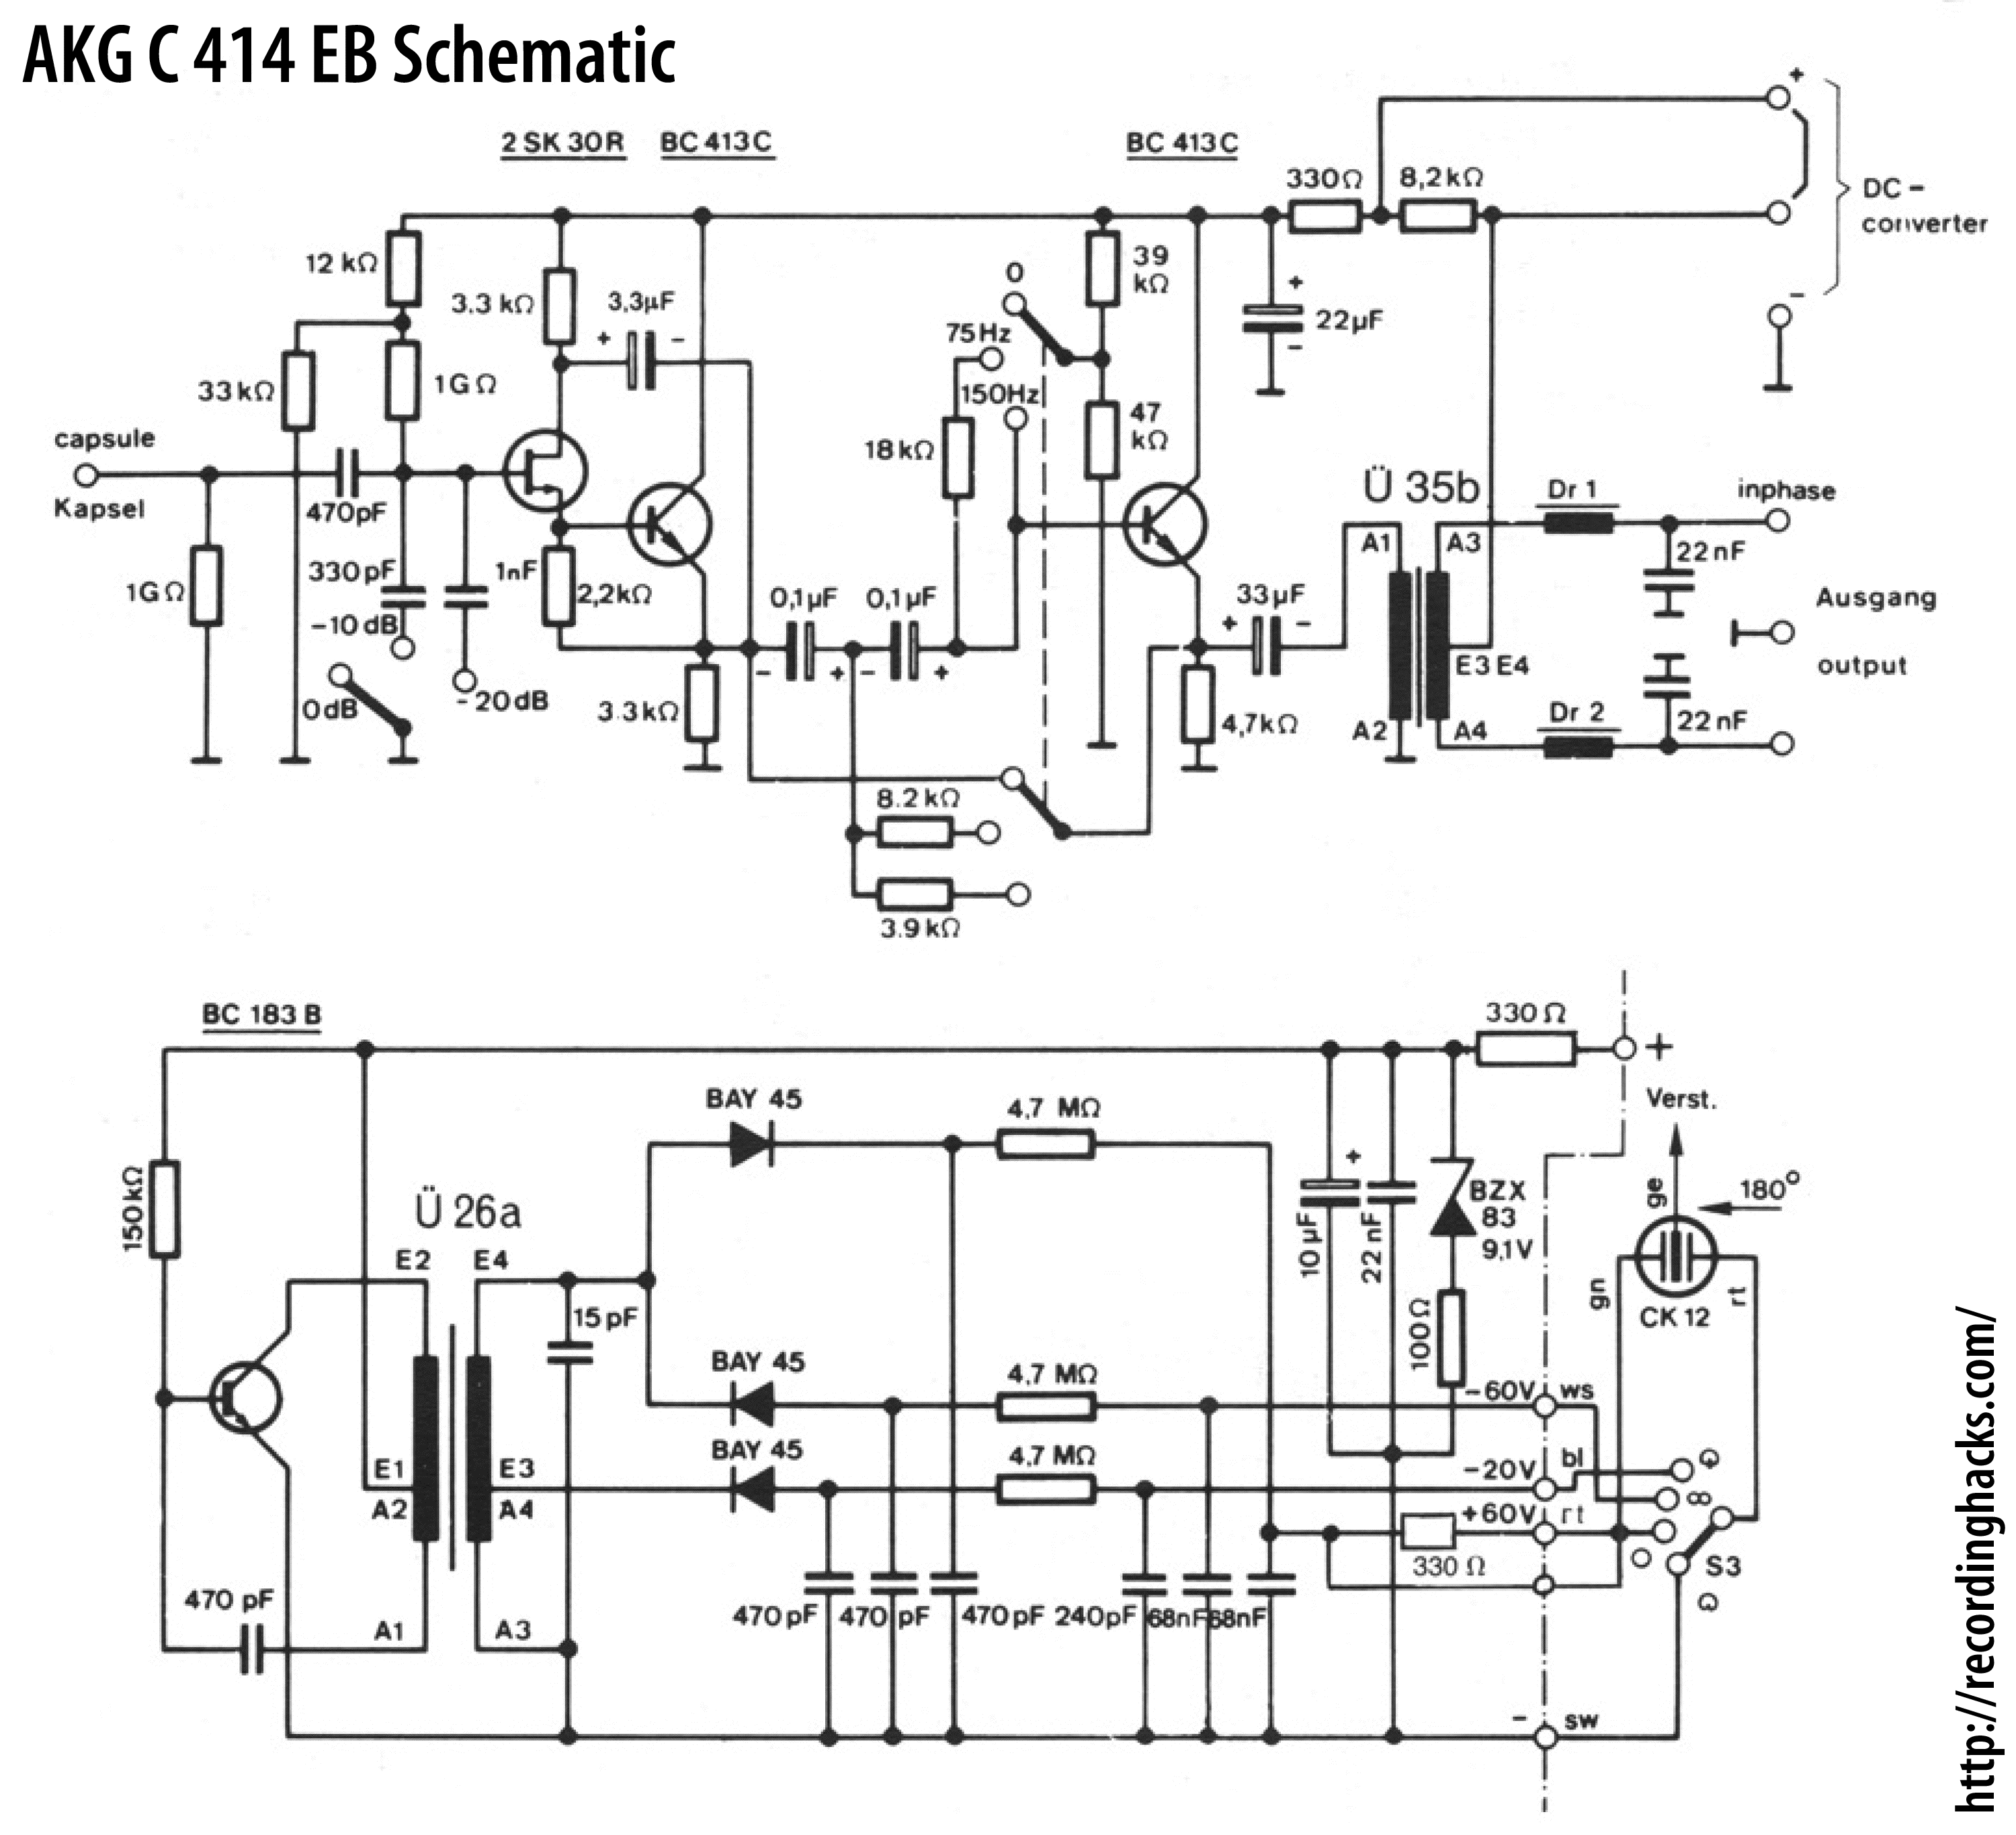 xlr microphone cable wiring polarity tester schematic